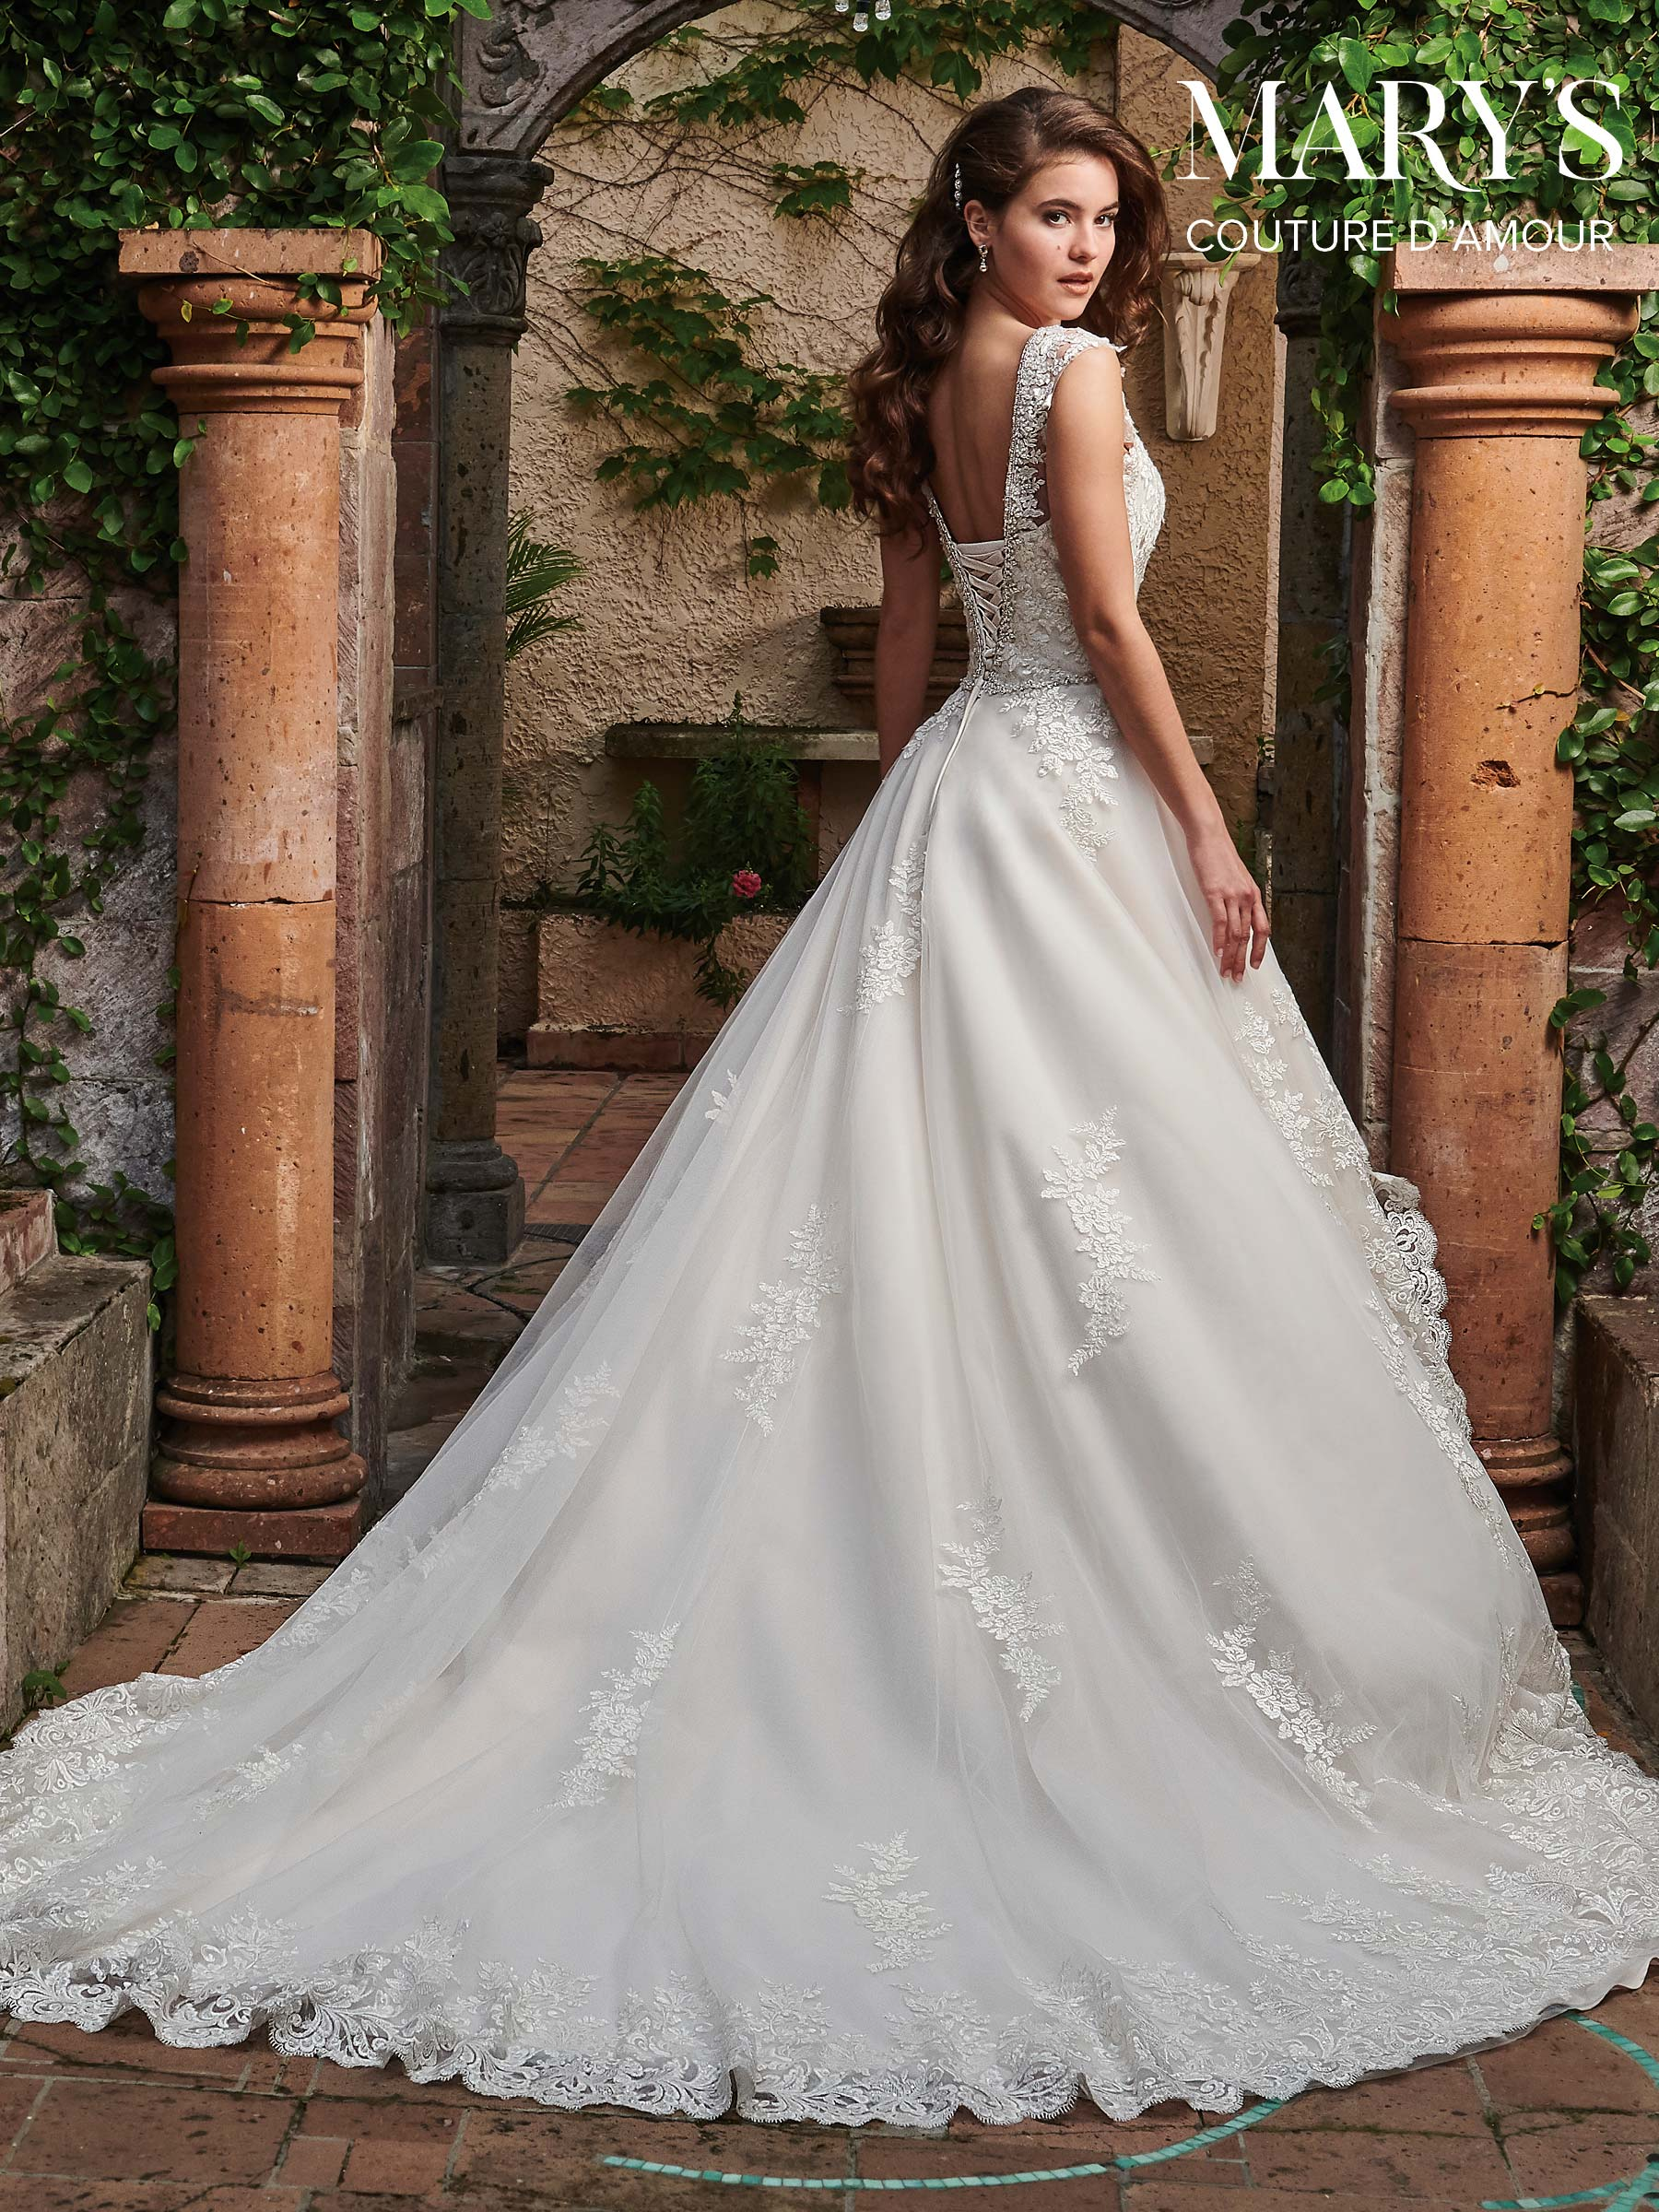 Couture Damour Bridal Dresses   Couture d'Amour   Style - MB4036